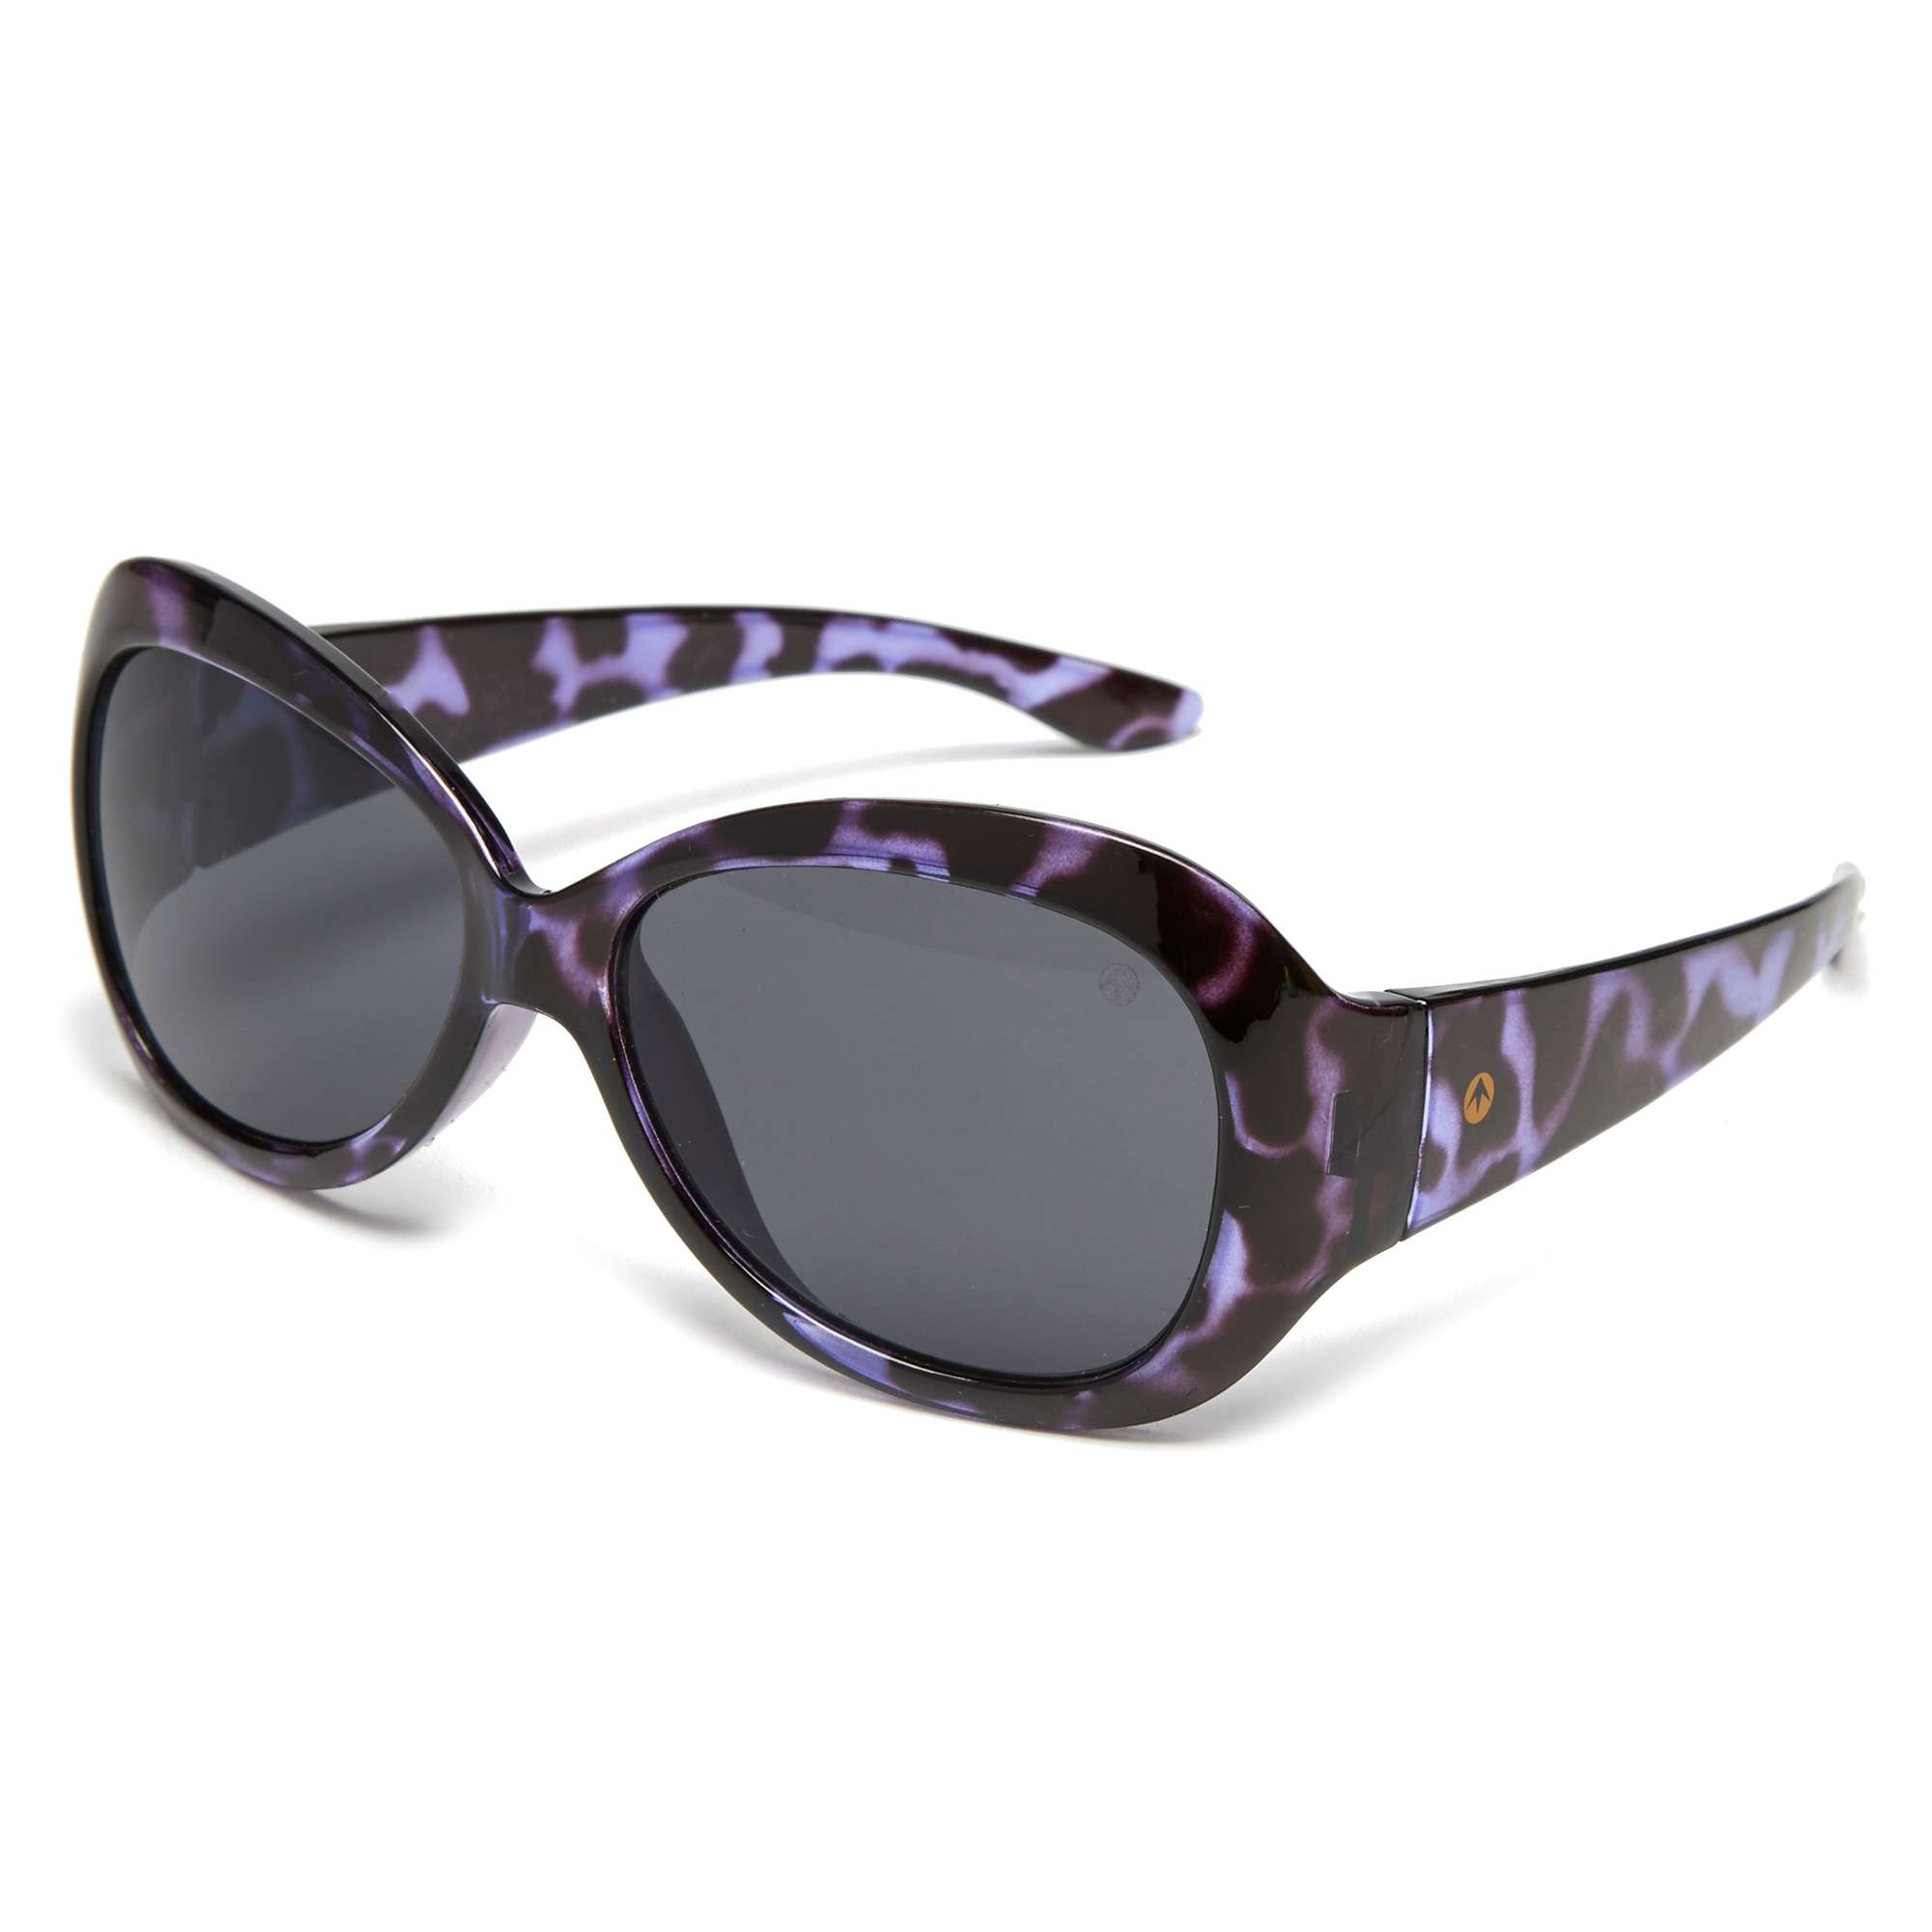 BLACKS Girls' Wayfarer Sunglasses